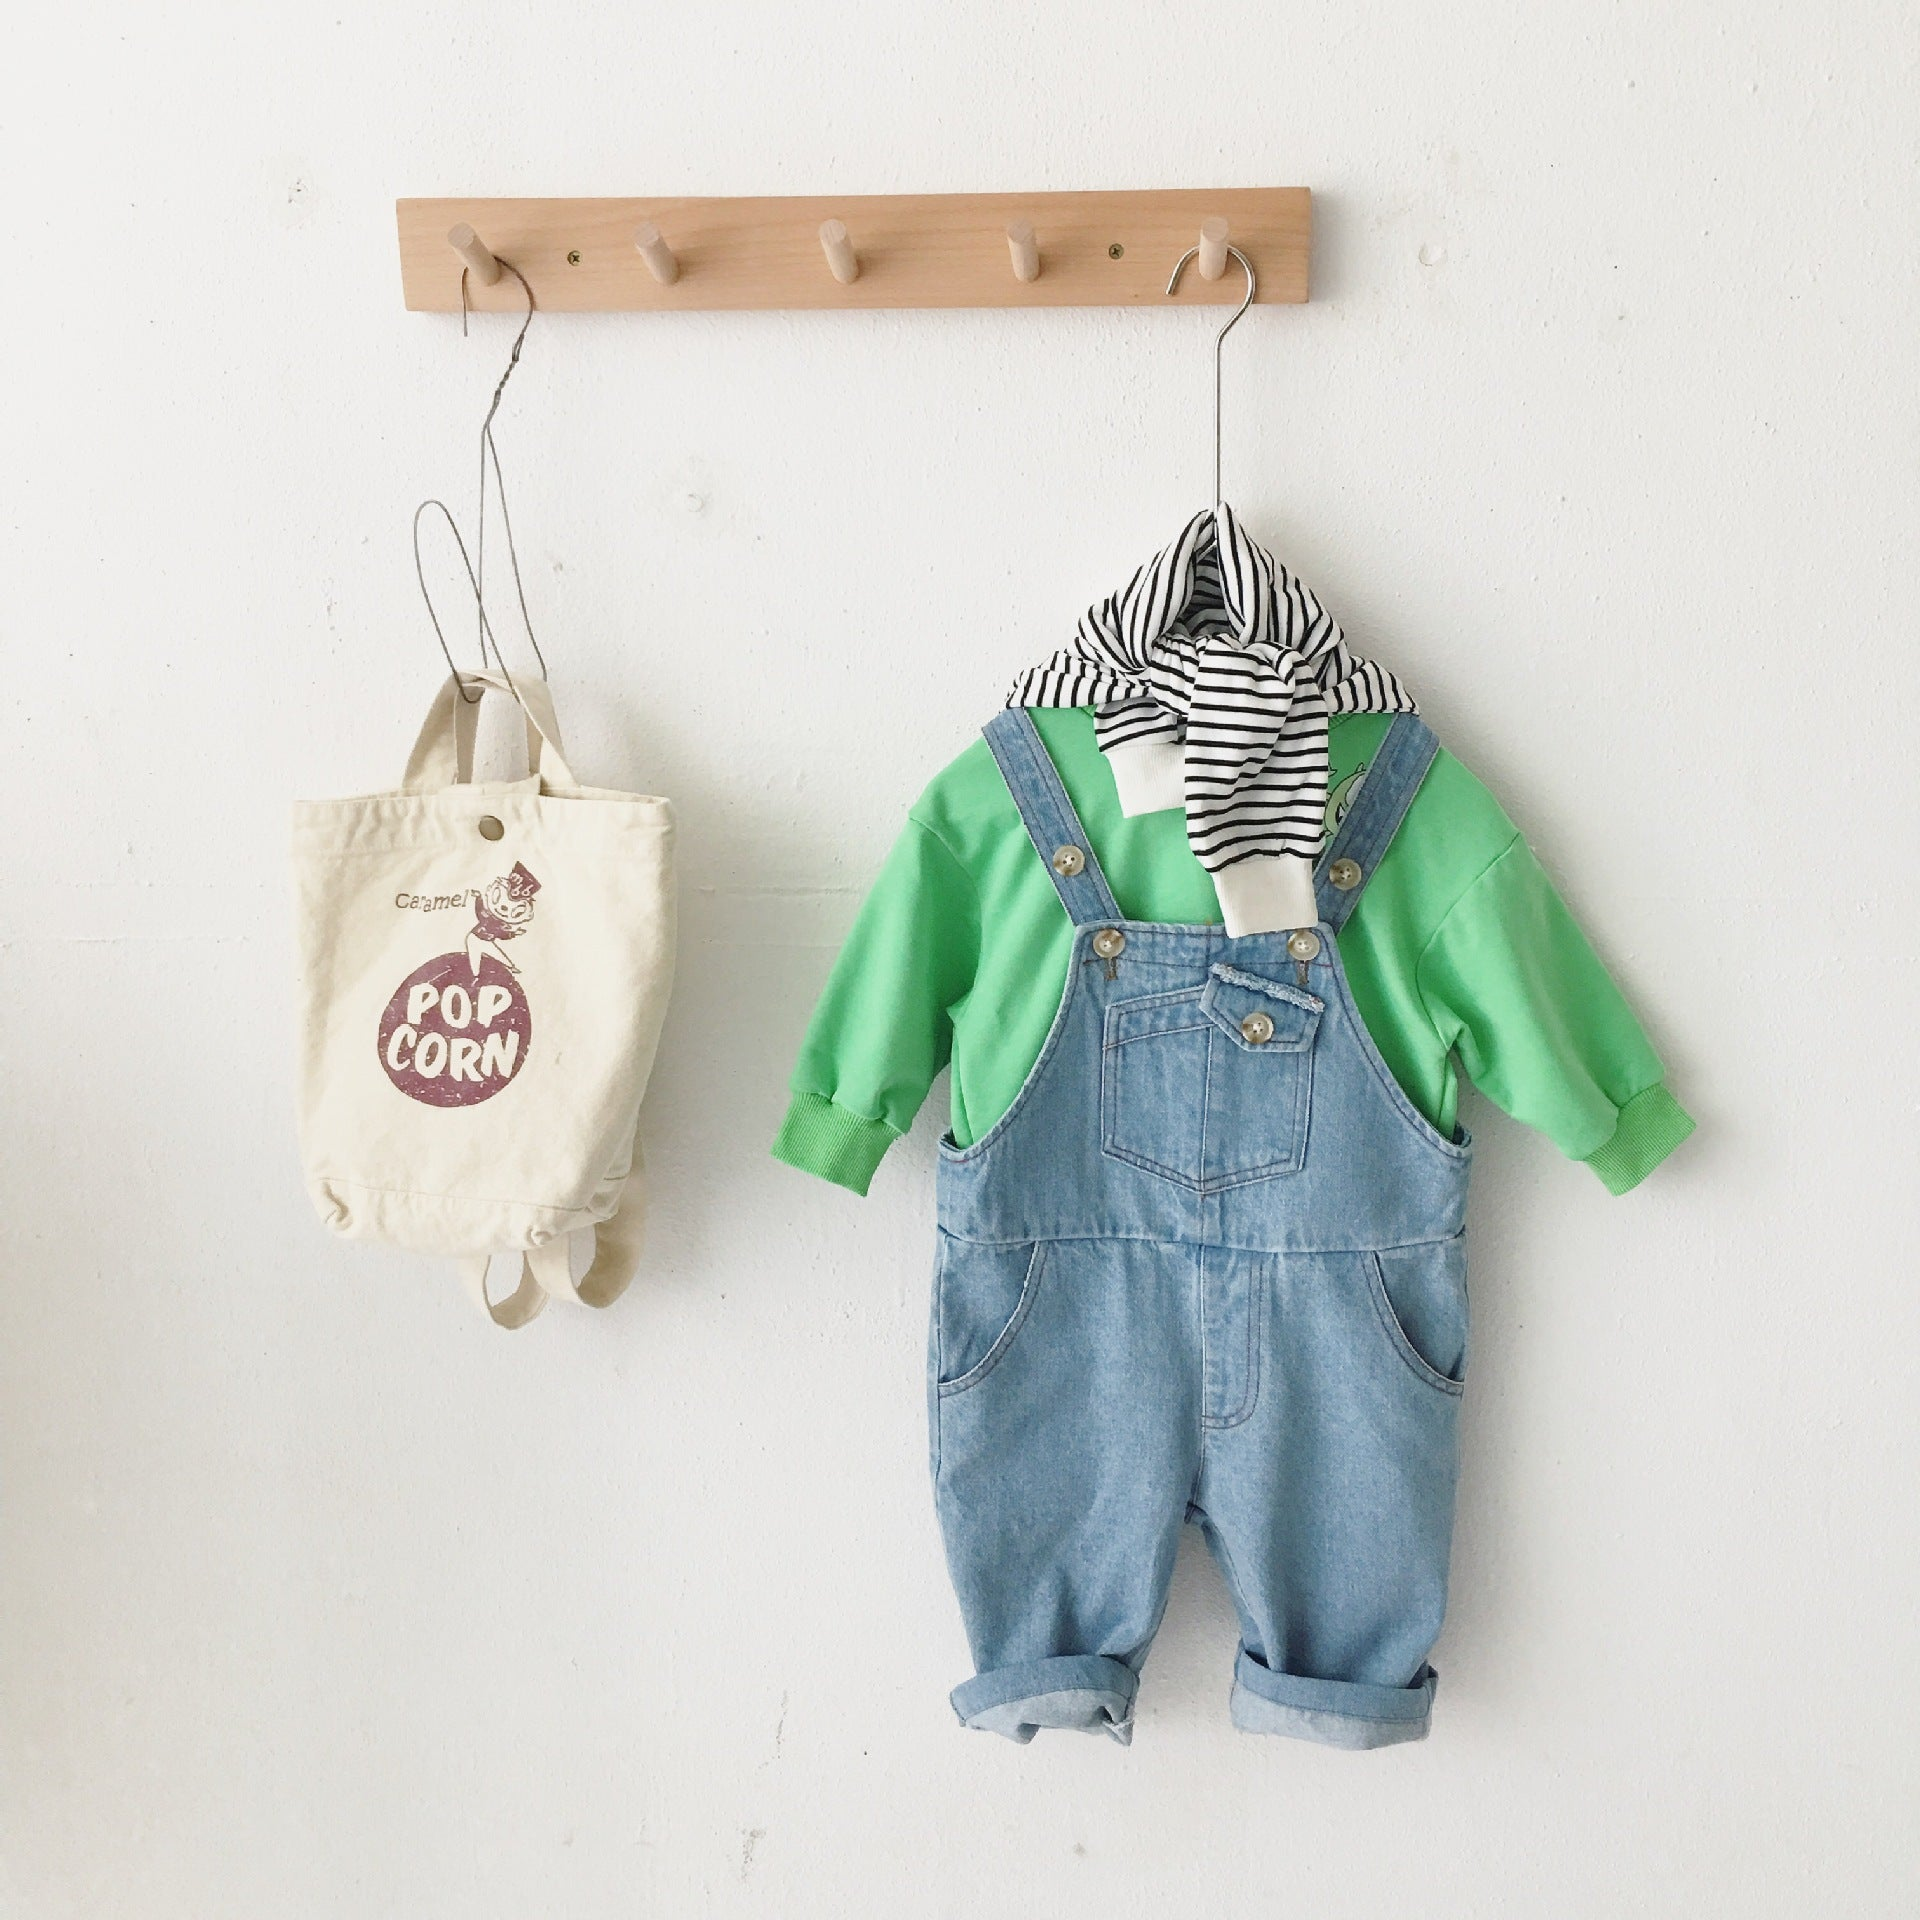 Unisex childrens Jeans Dungarees